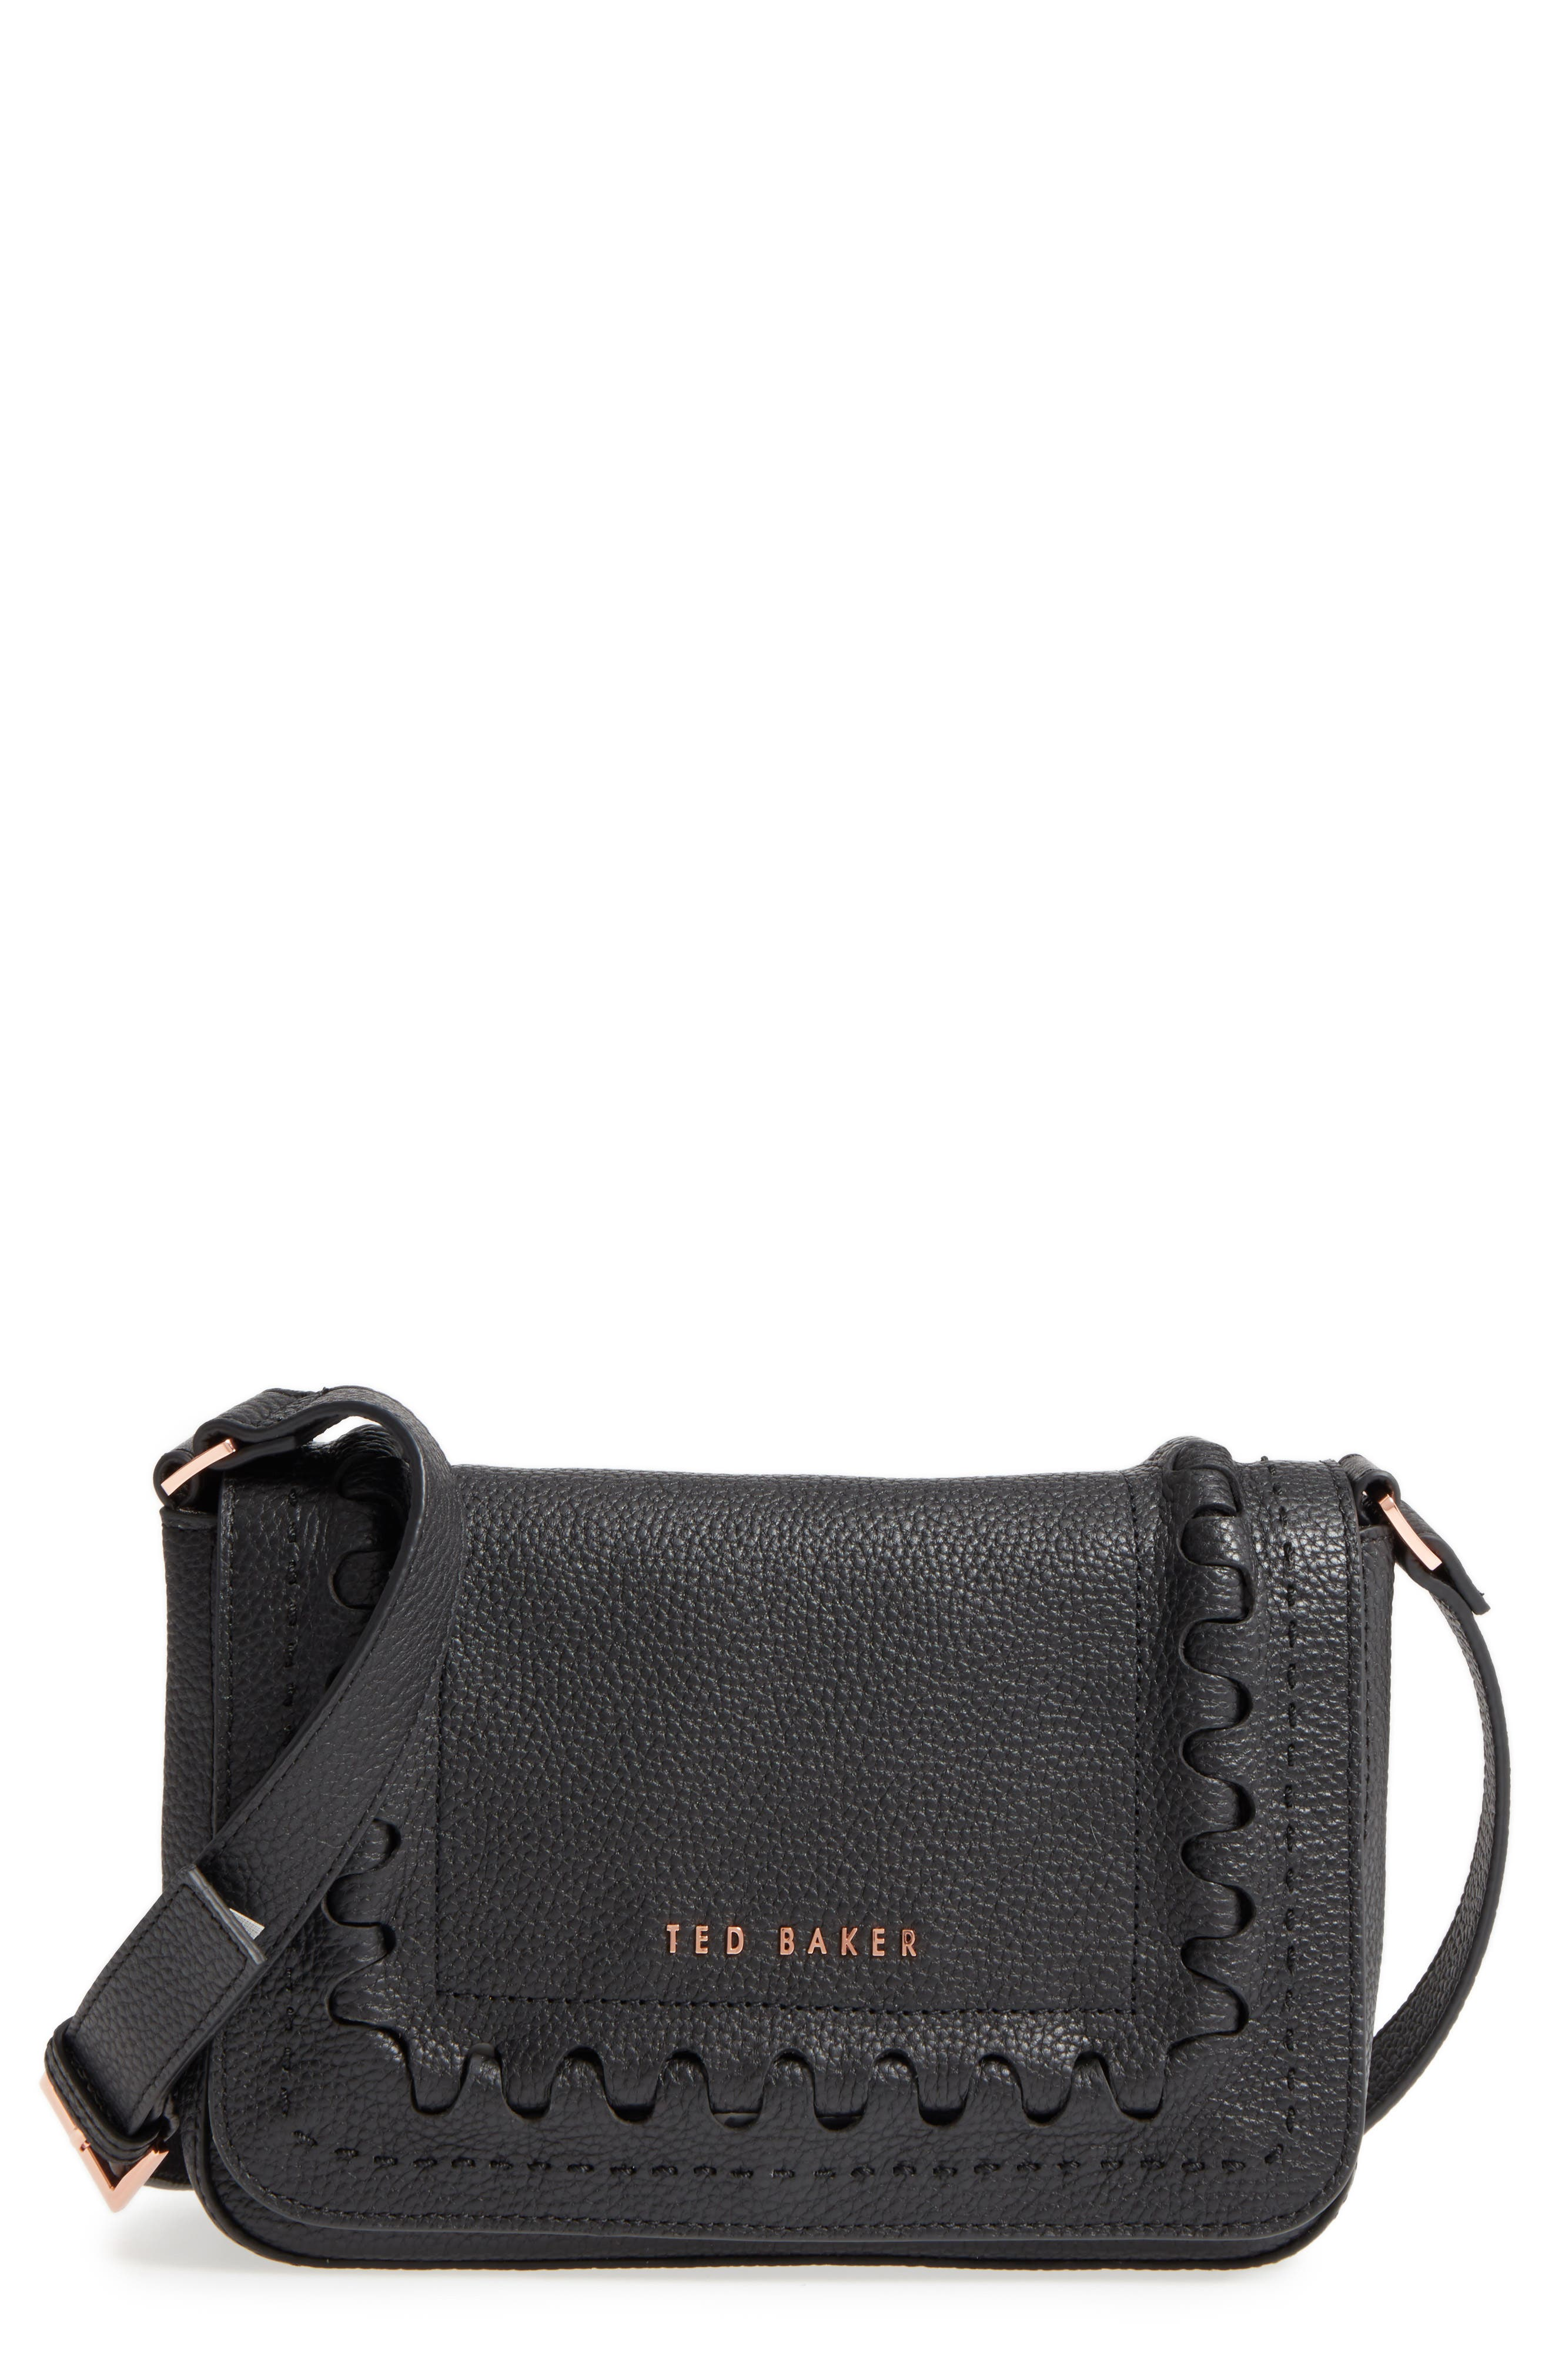 Tippi Leather Crossbody Bag,                             Main thumbnail 1, color,                             001